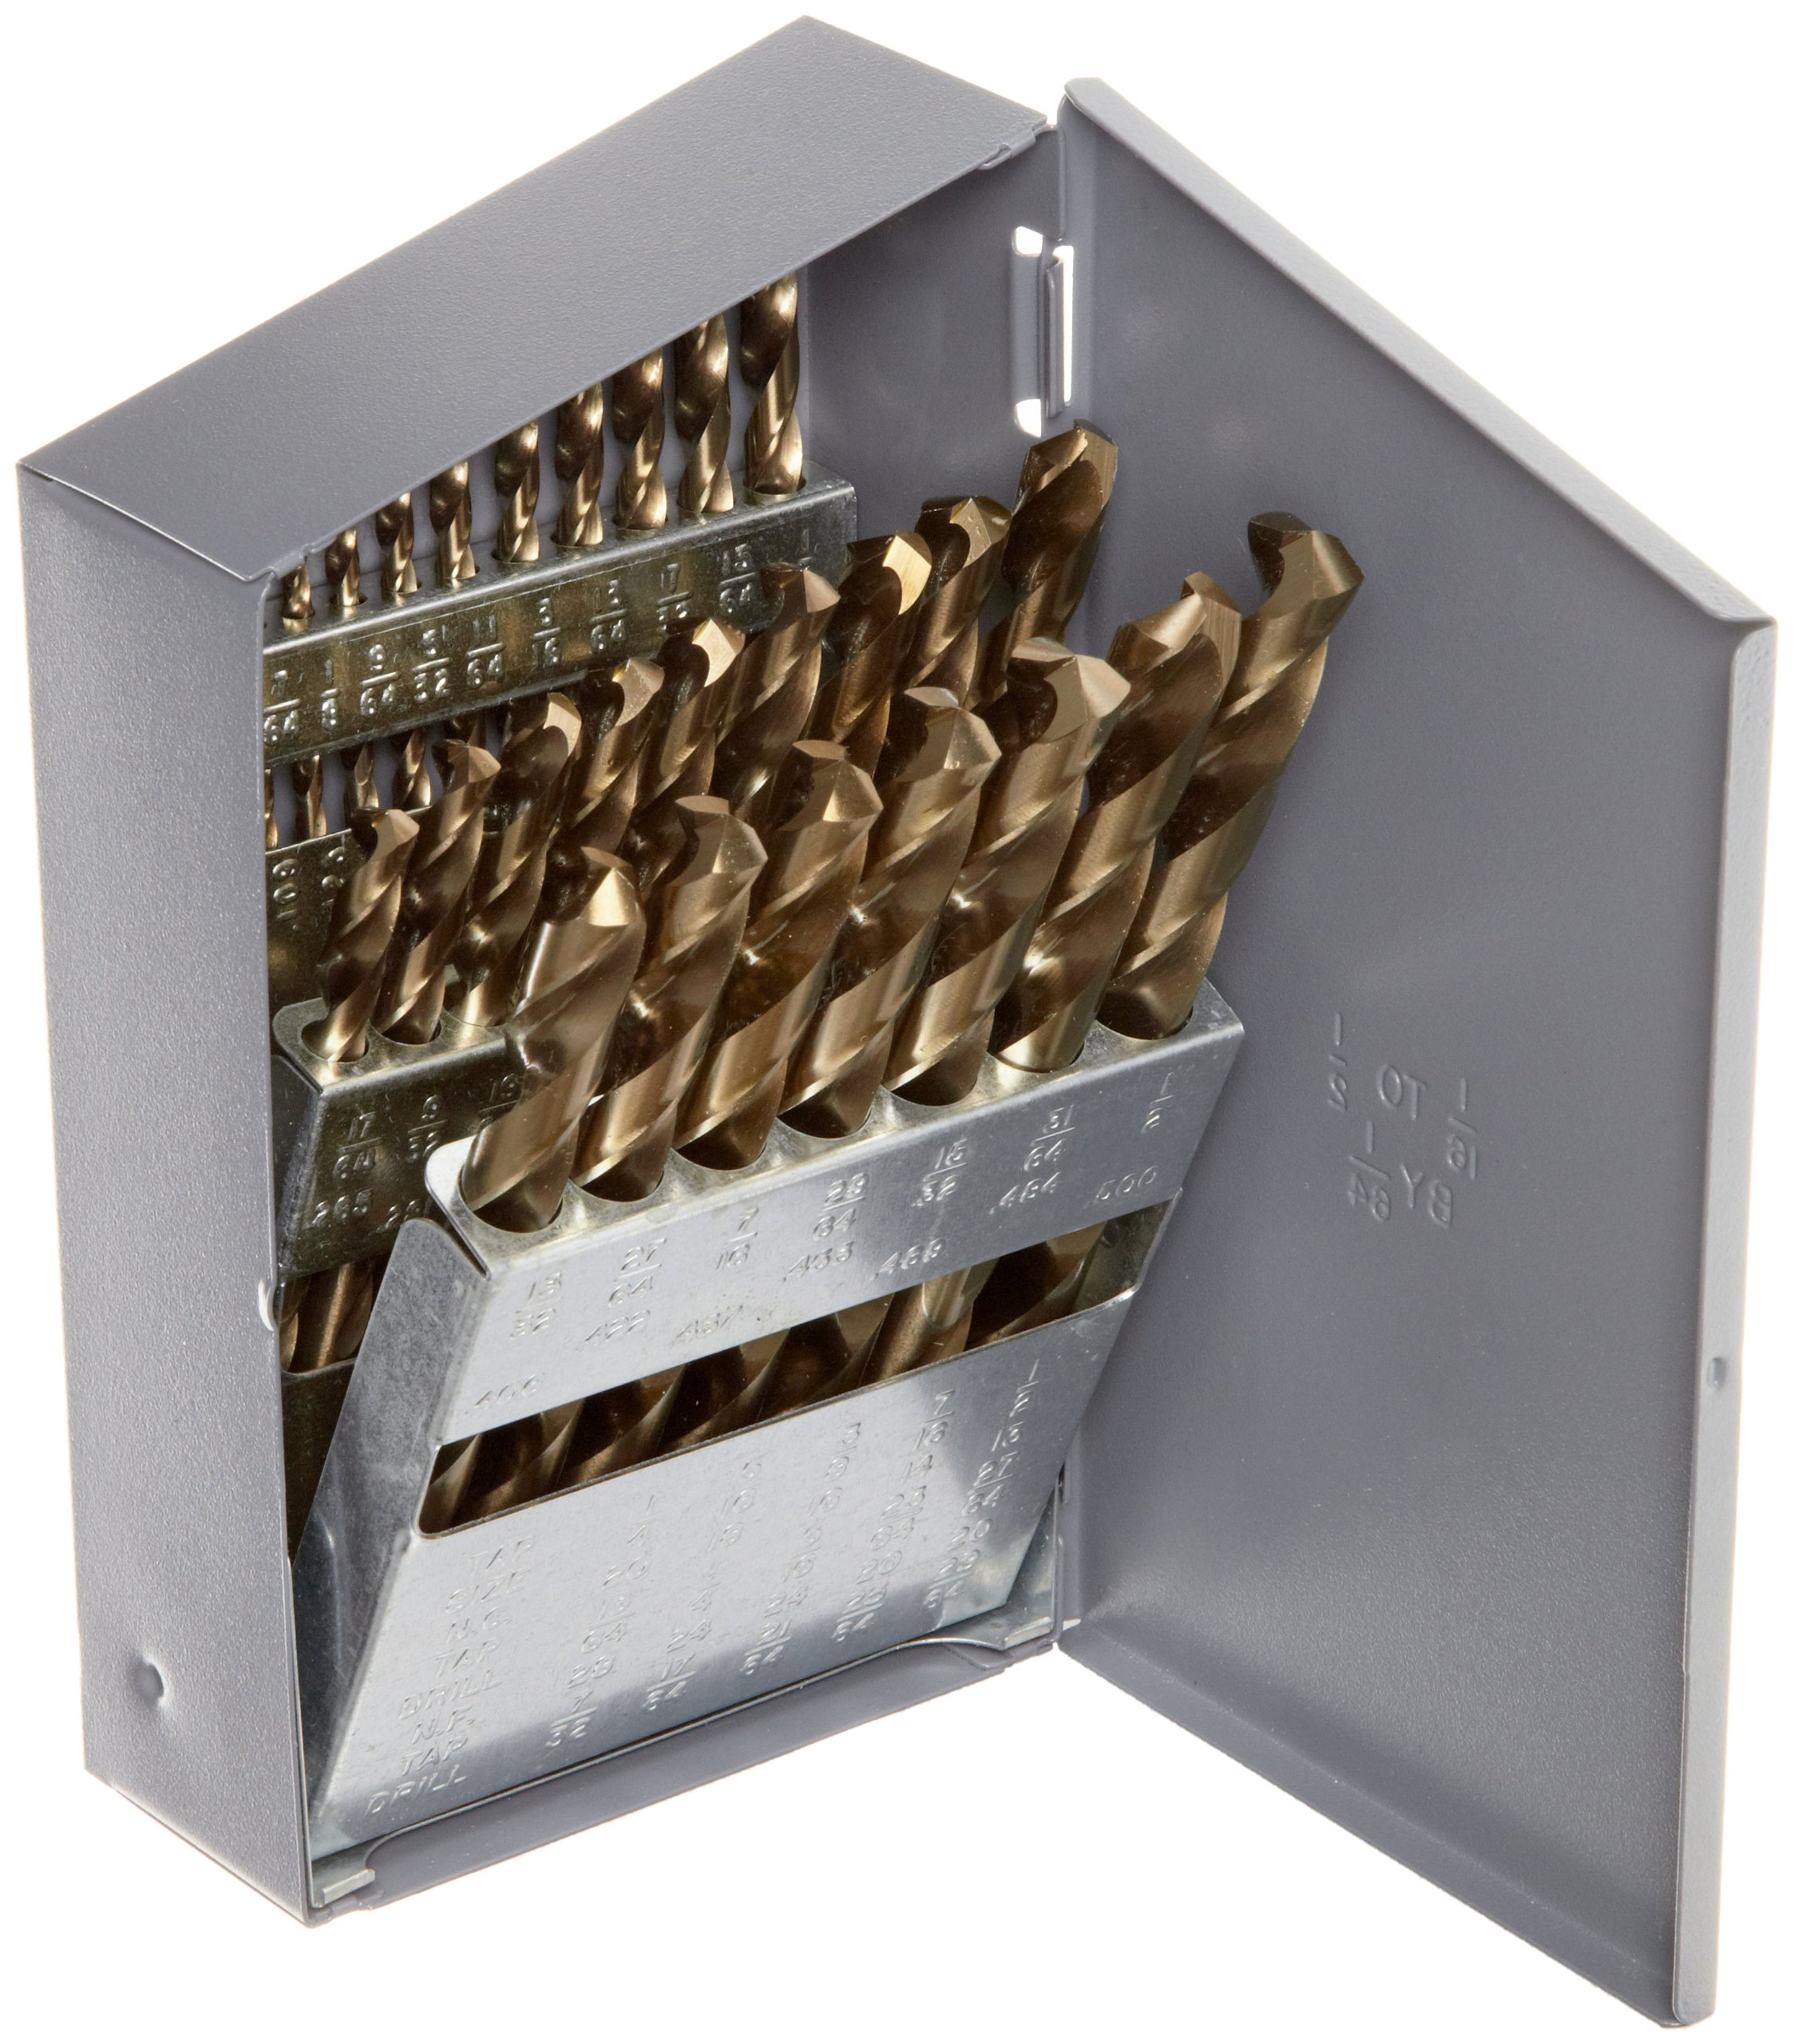 Chicago Latrobe 550 Series Cobalt Steel Jobber Length Drill Bit Set with Metal Case, Gold Oxide Finish, 135 Degree Split Point, Inch, 29-piece, 1/16'' - 1/2'' in 1/64'' increments by Chicago Latrobe (Image #1)